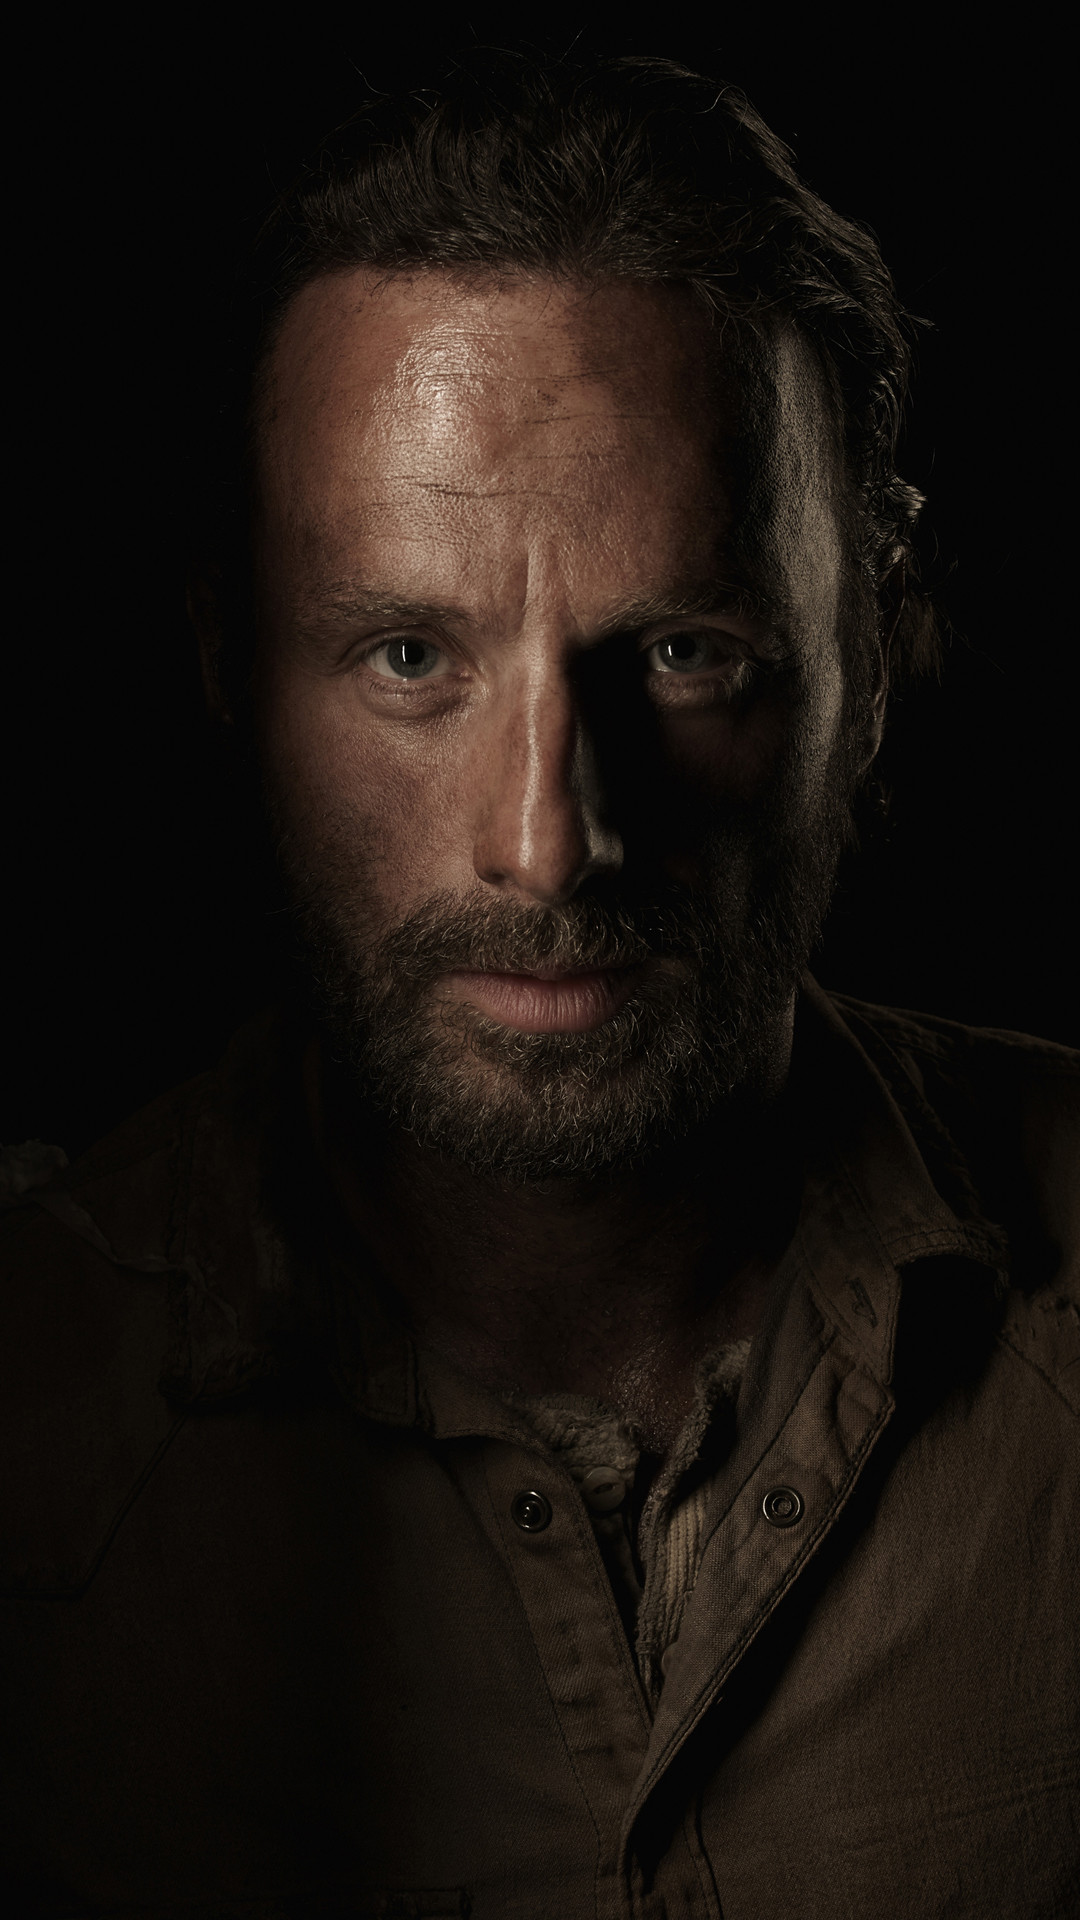 1080x1920 Andrew Lincoln The Walking Dead Android Wallpaper